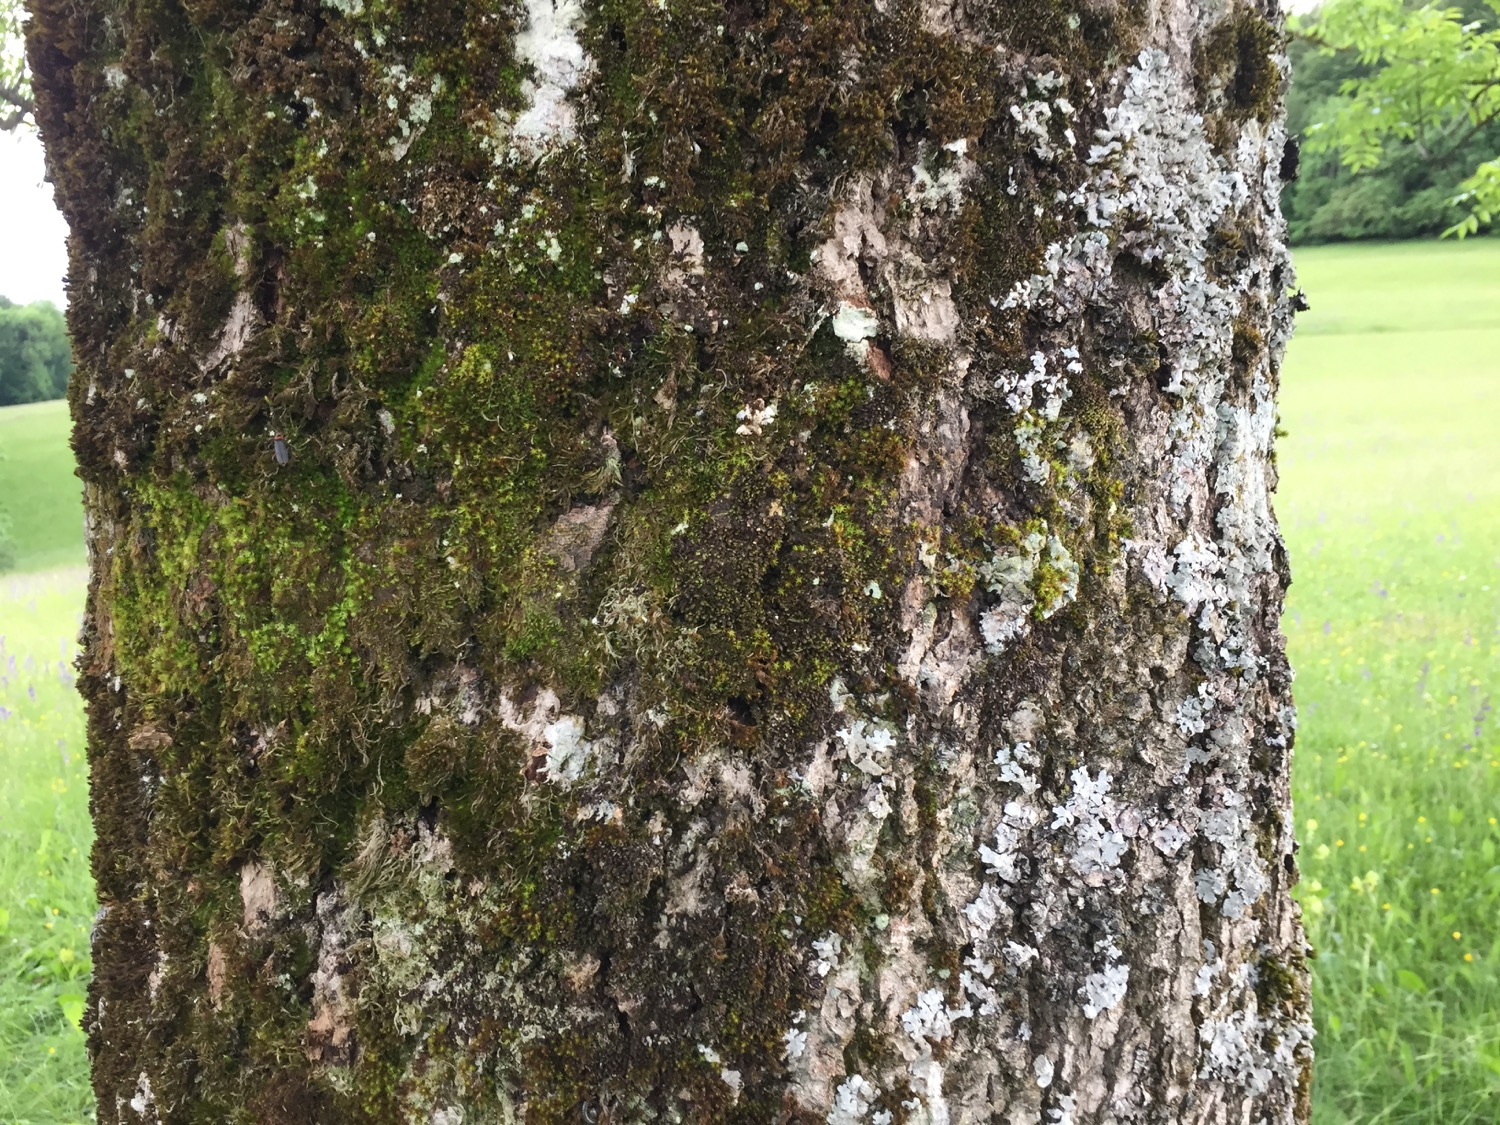 Results of TreePRO usage on a very soft and wet bark